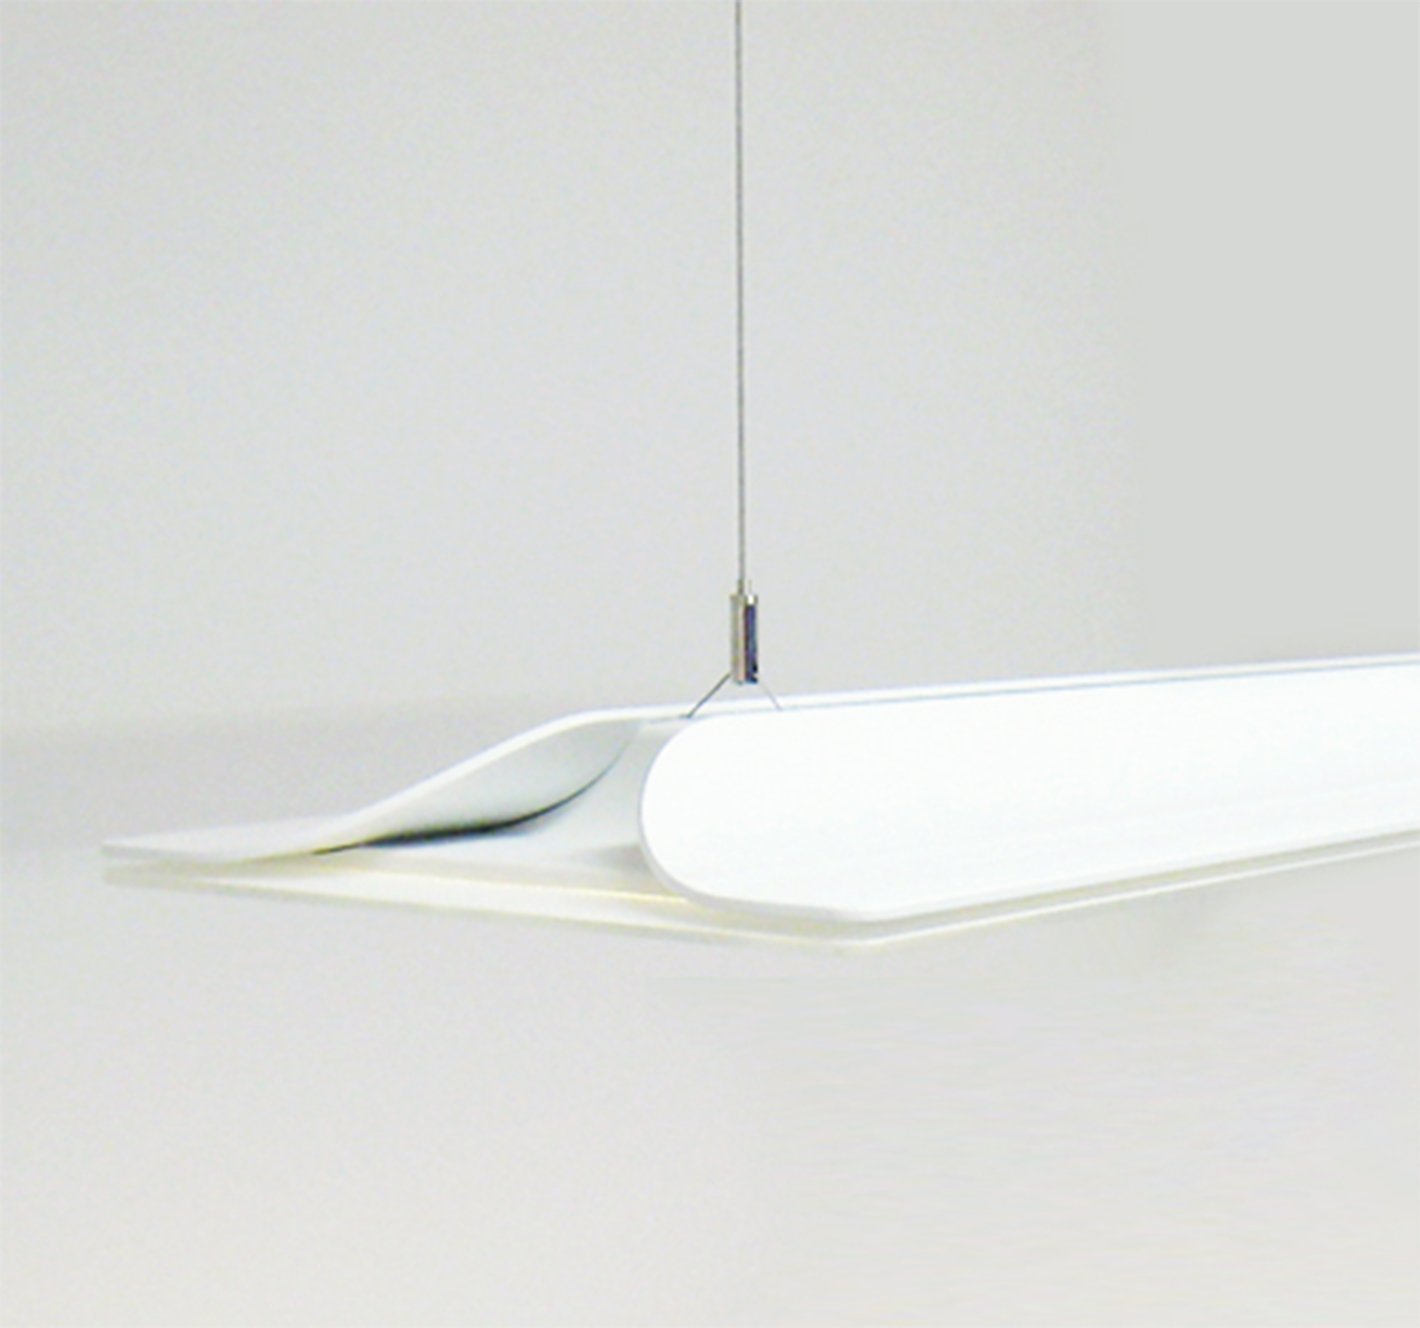 Zumtobel – OLED Lights